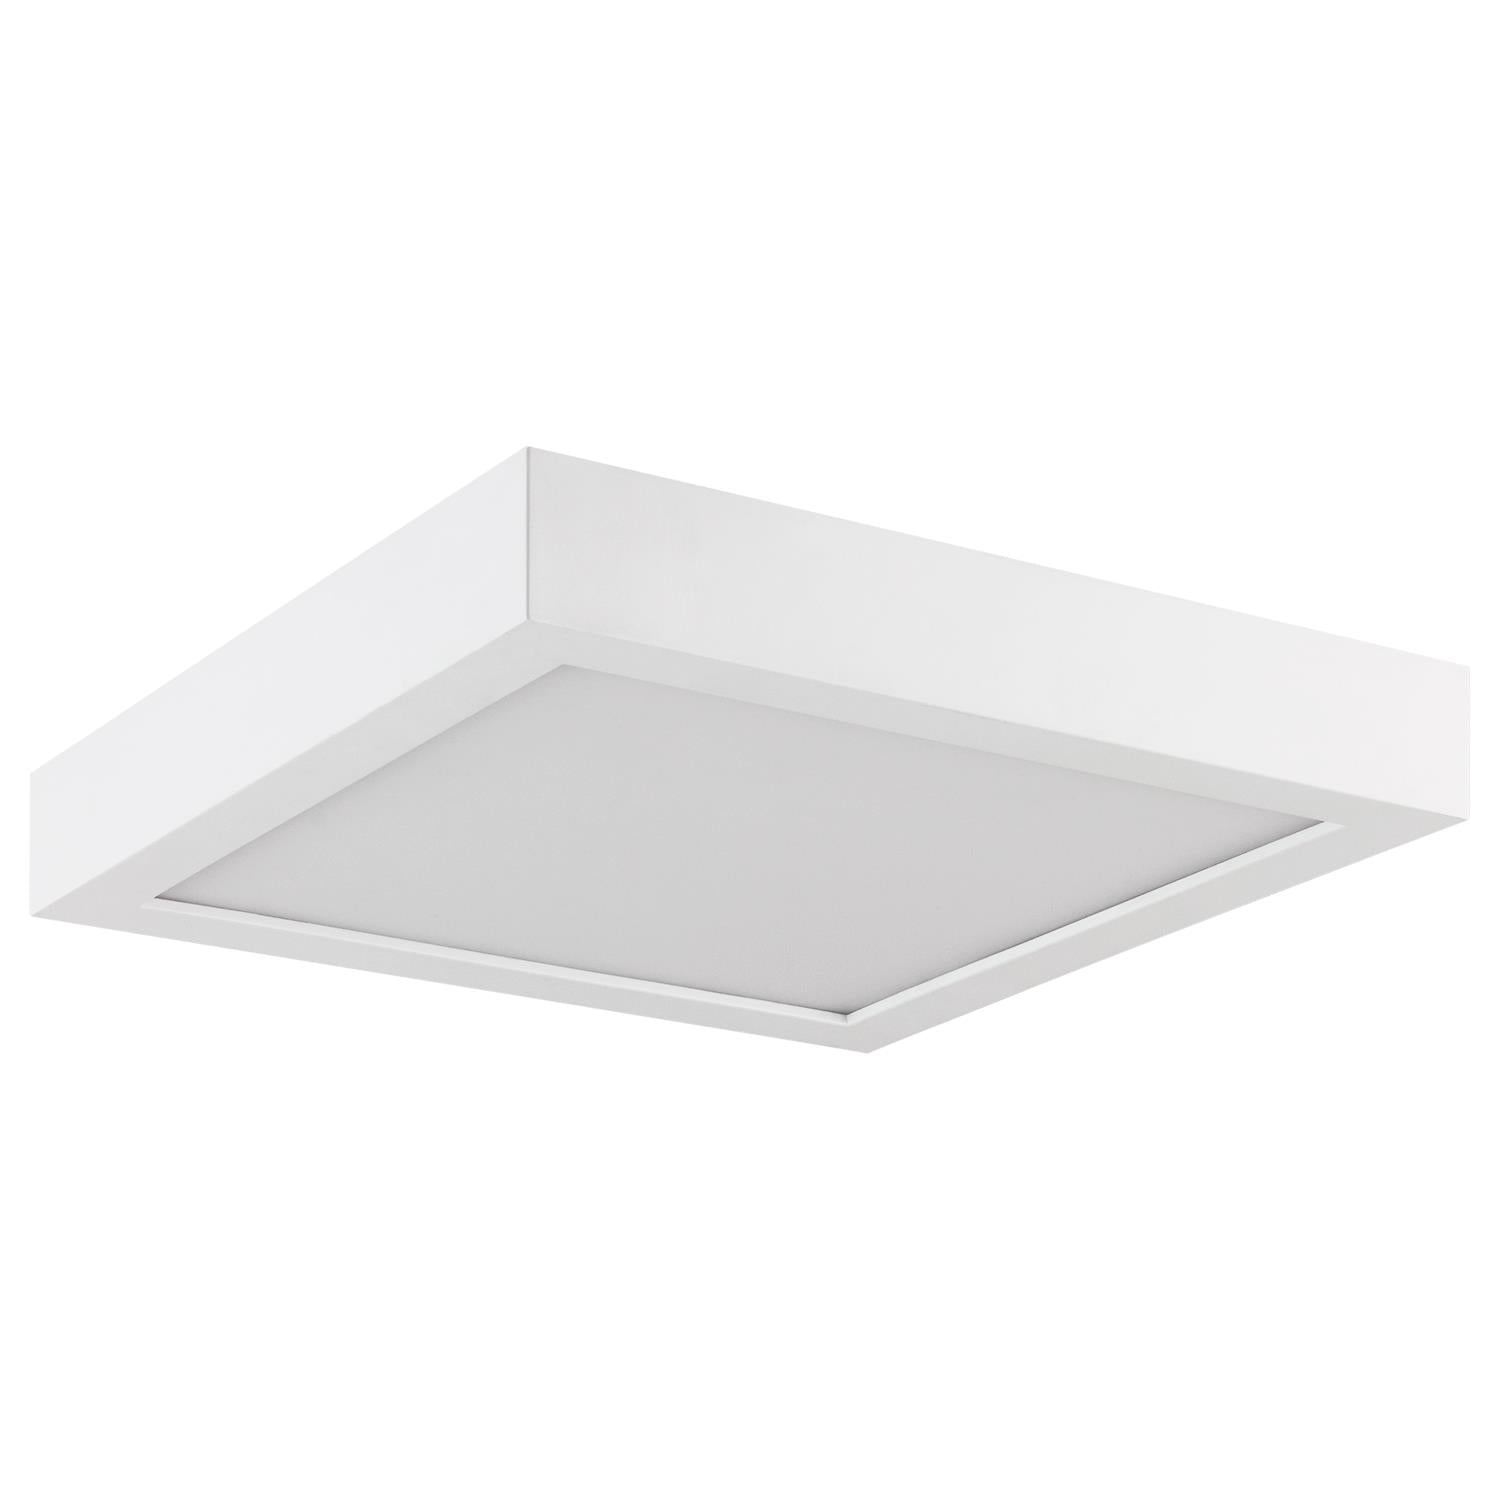 SUNLITE 19W 9in. Square LED Surface Mount Downlight 3000K Warm White